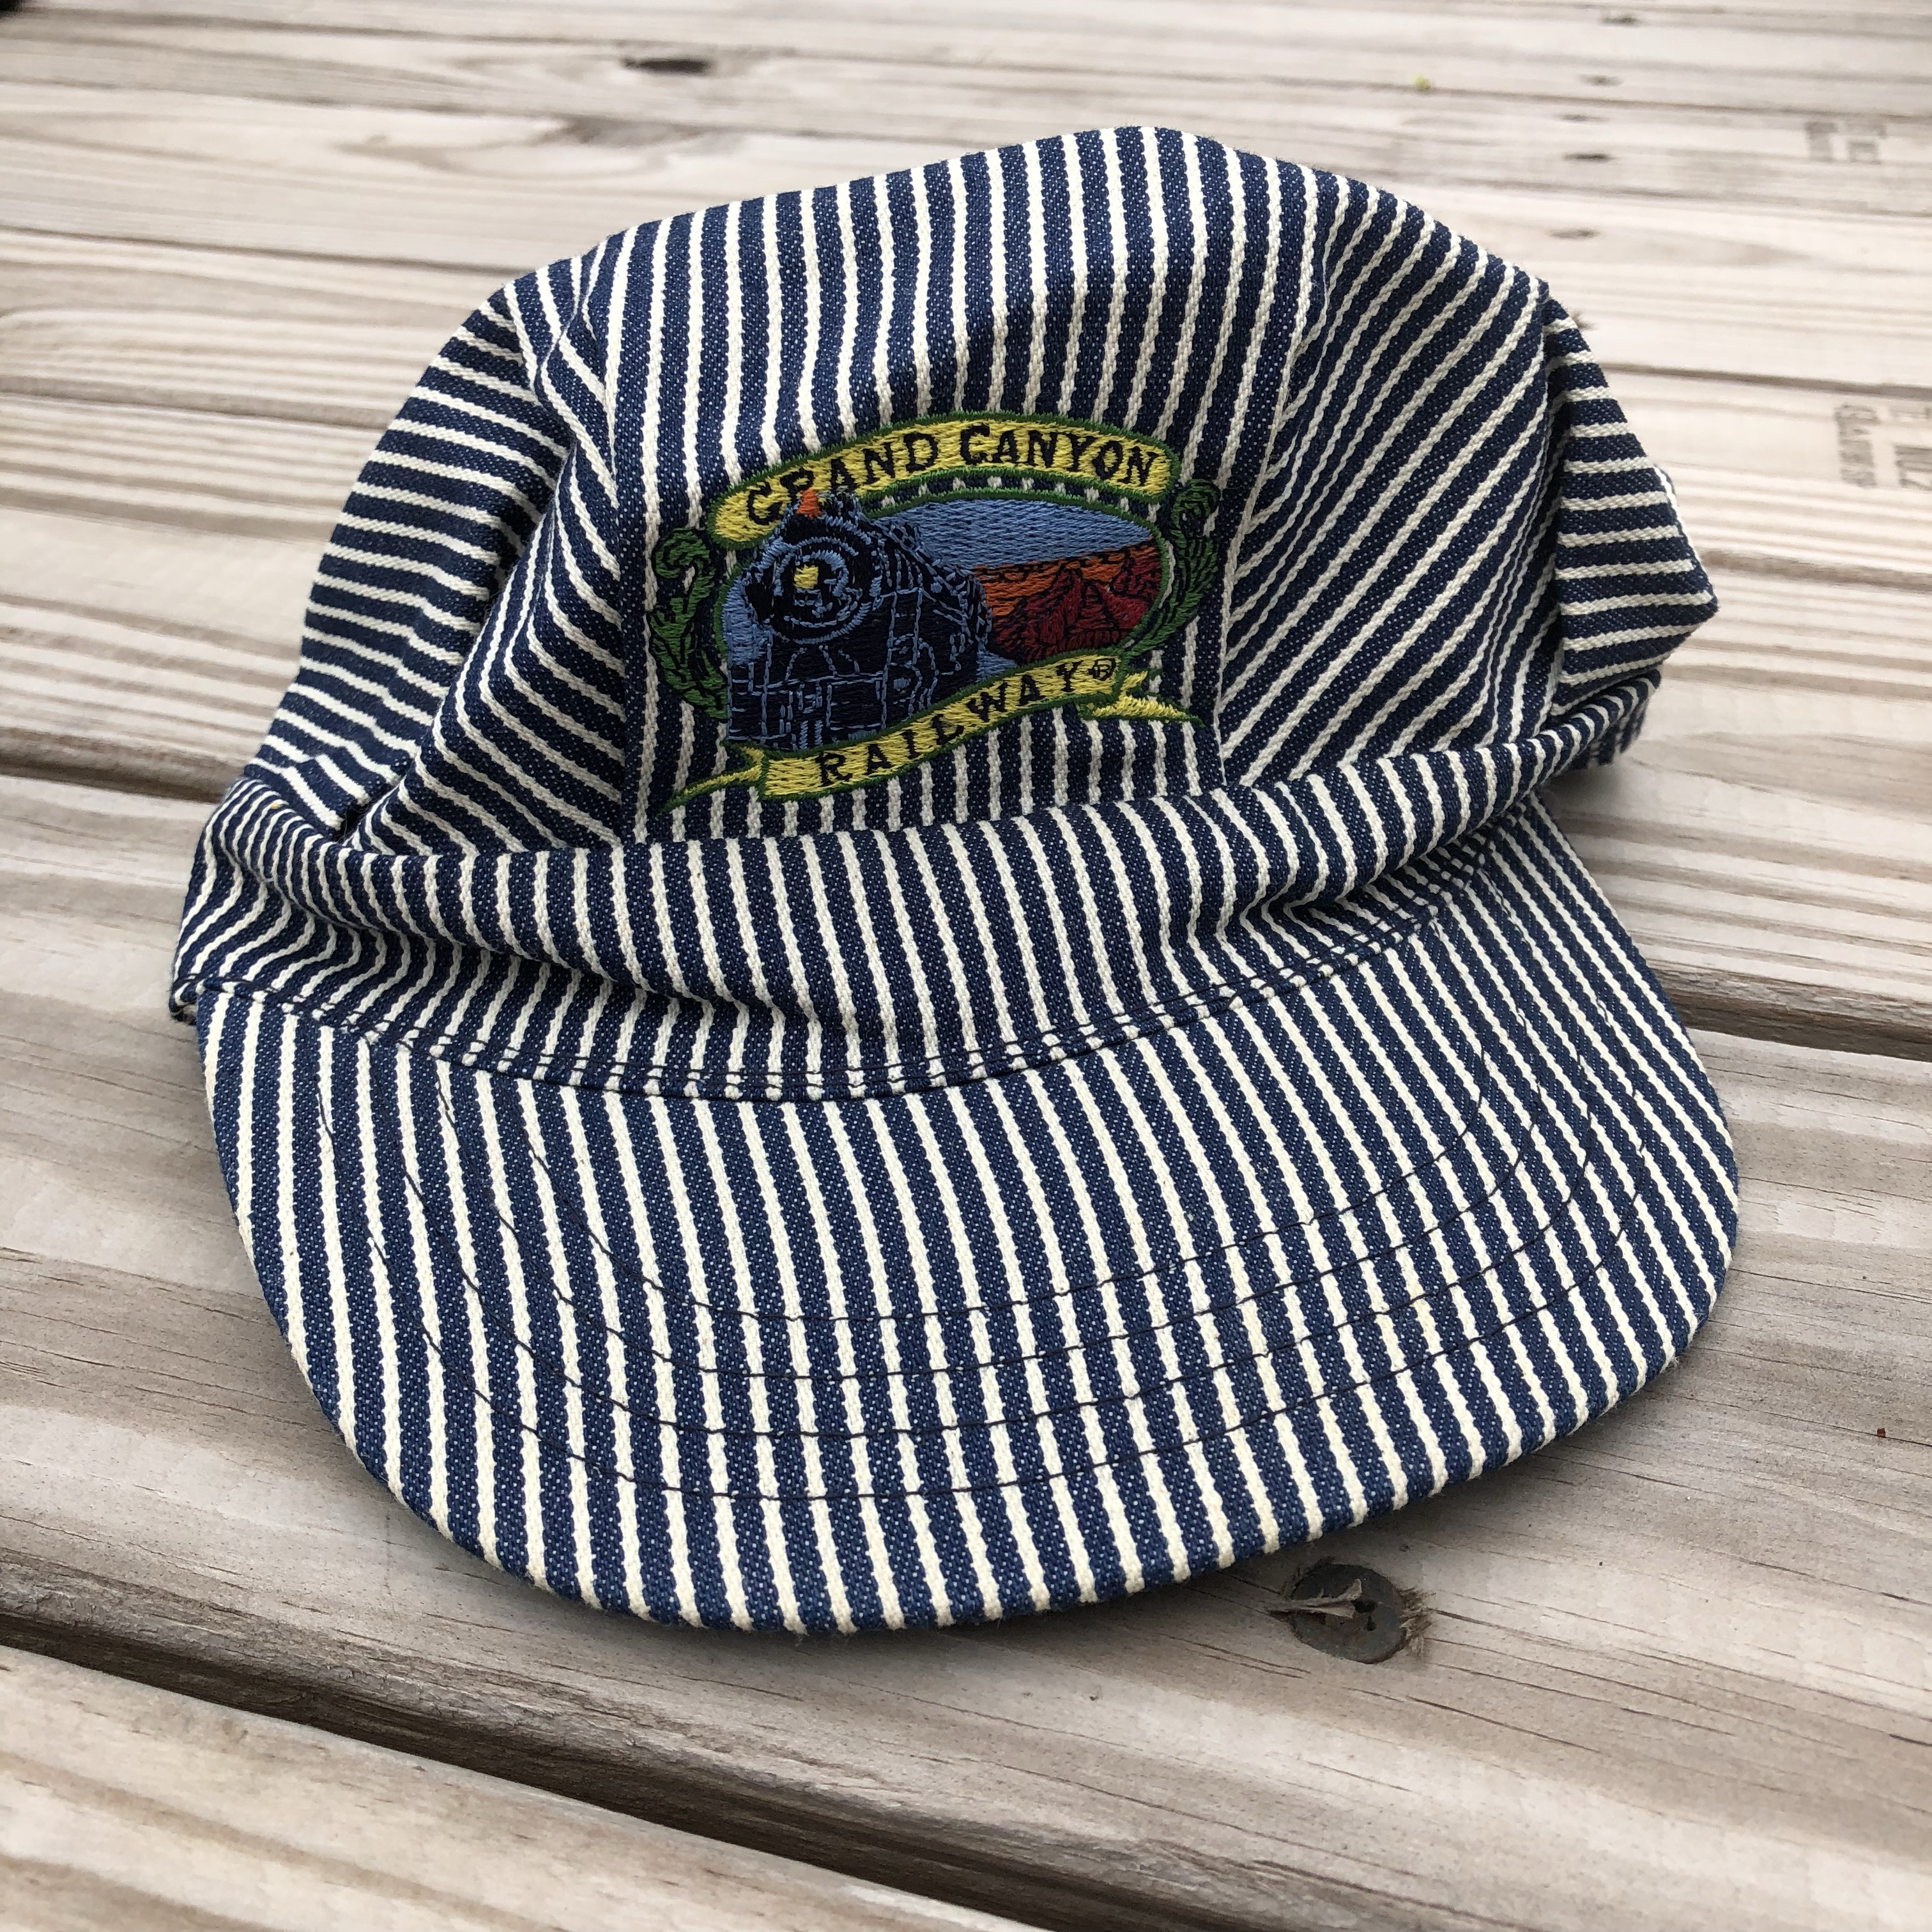 kidstablevintage. FollowingFollow. 2 months ago. United States. Grand  Canyon Railway train conductor style adjustable hat. 3d406ff49f4